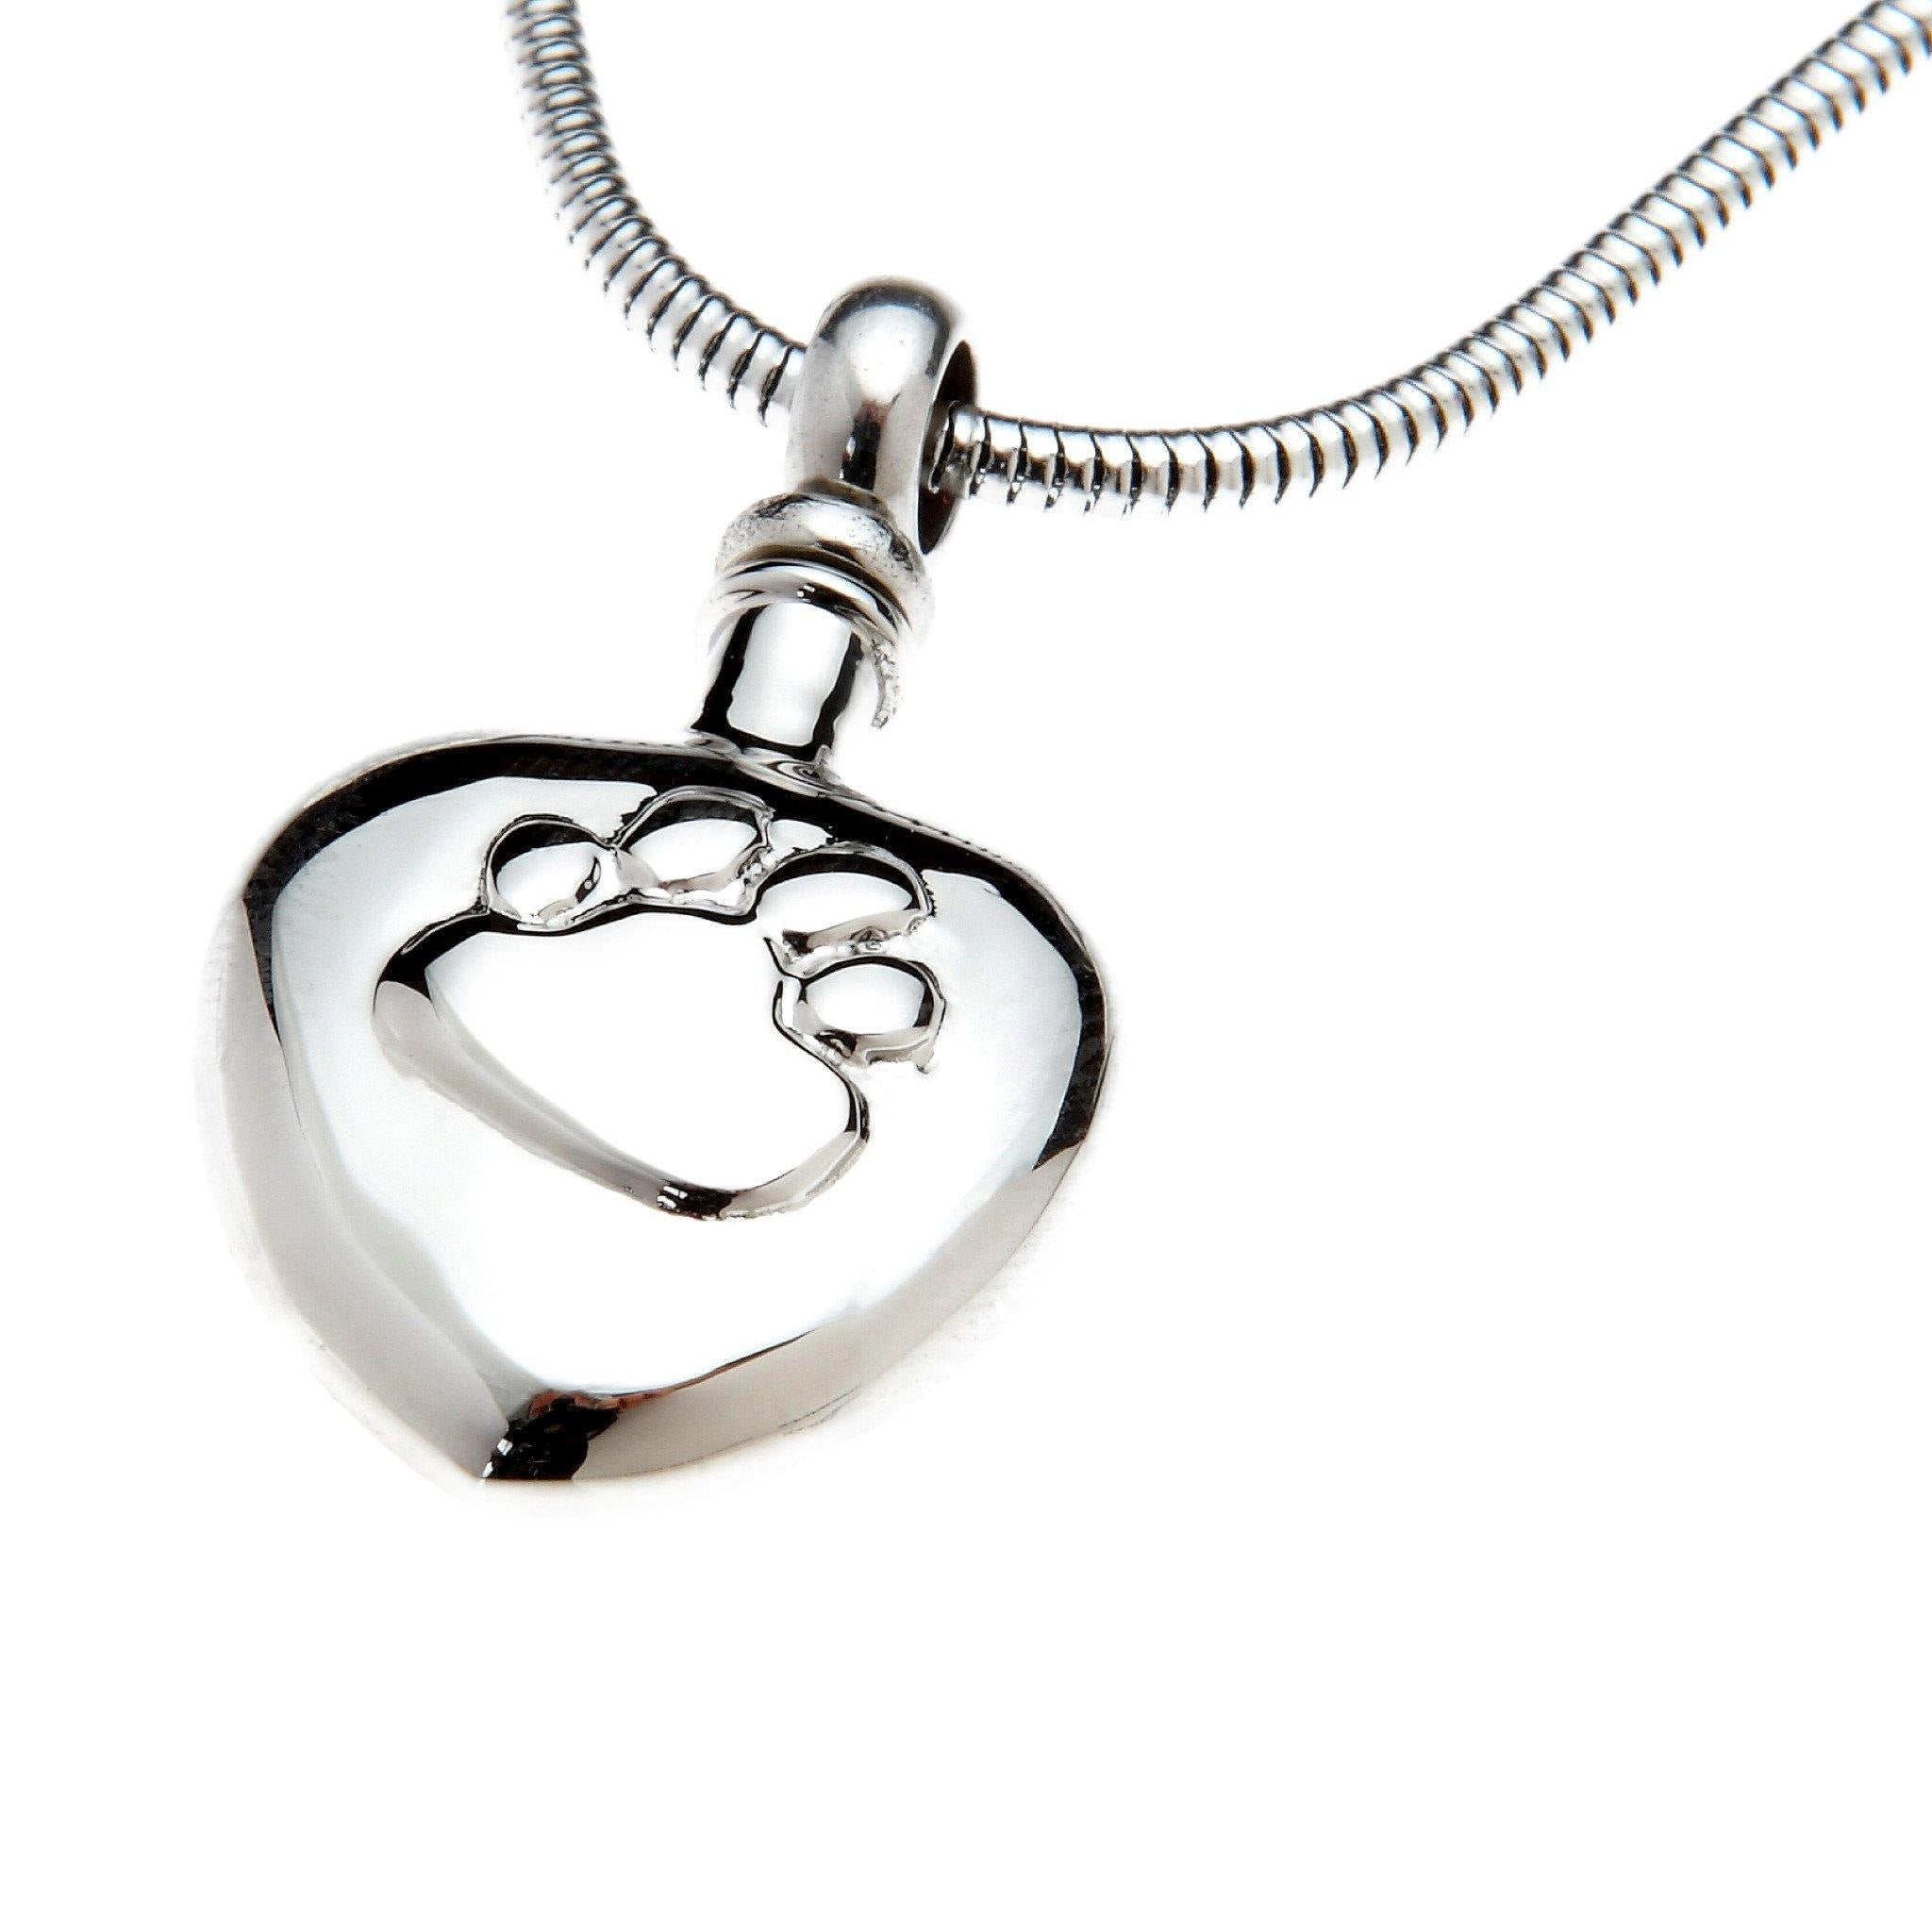 Chelsea Cremation Ashes Pendant Design 06 - Urns UK